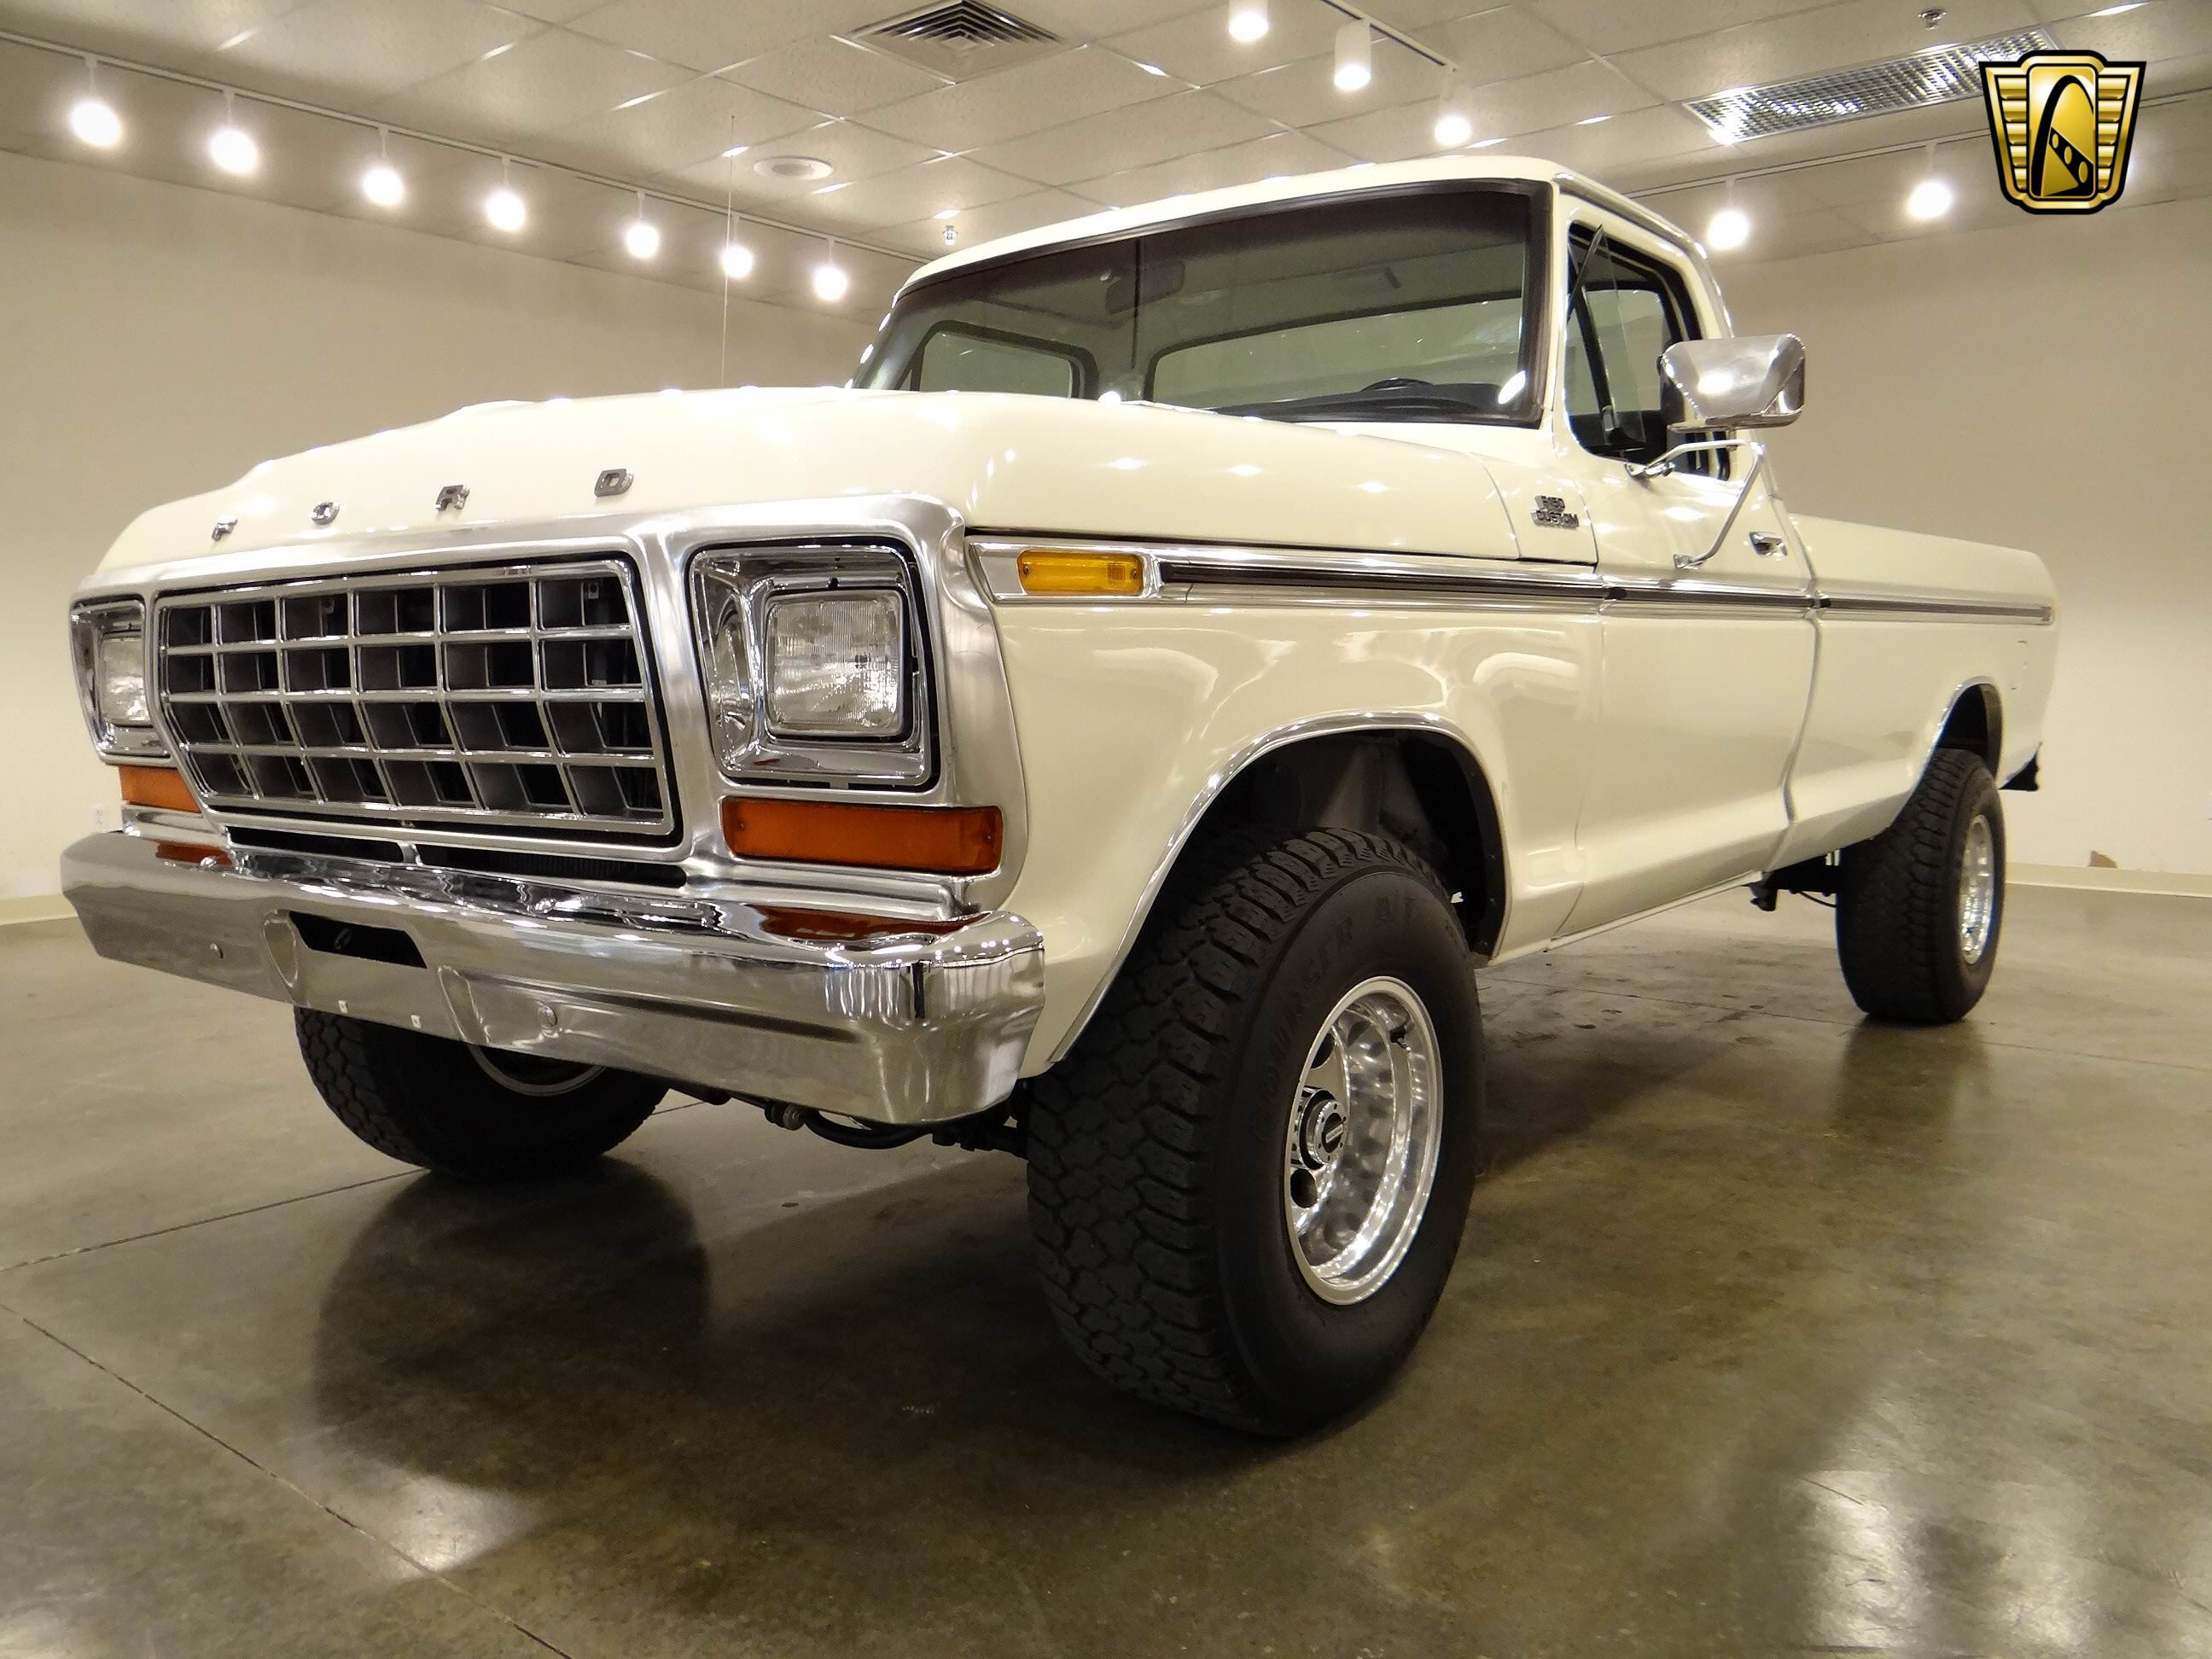 1979 ford f150 4x4 pickup 19 wallpaper 2592x1944 386877 wallpaperup. Black Bedroom Furniture Sets. Home Design Ideas